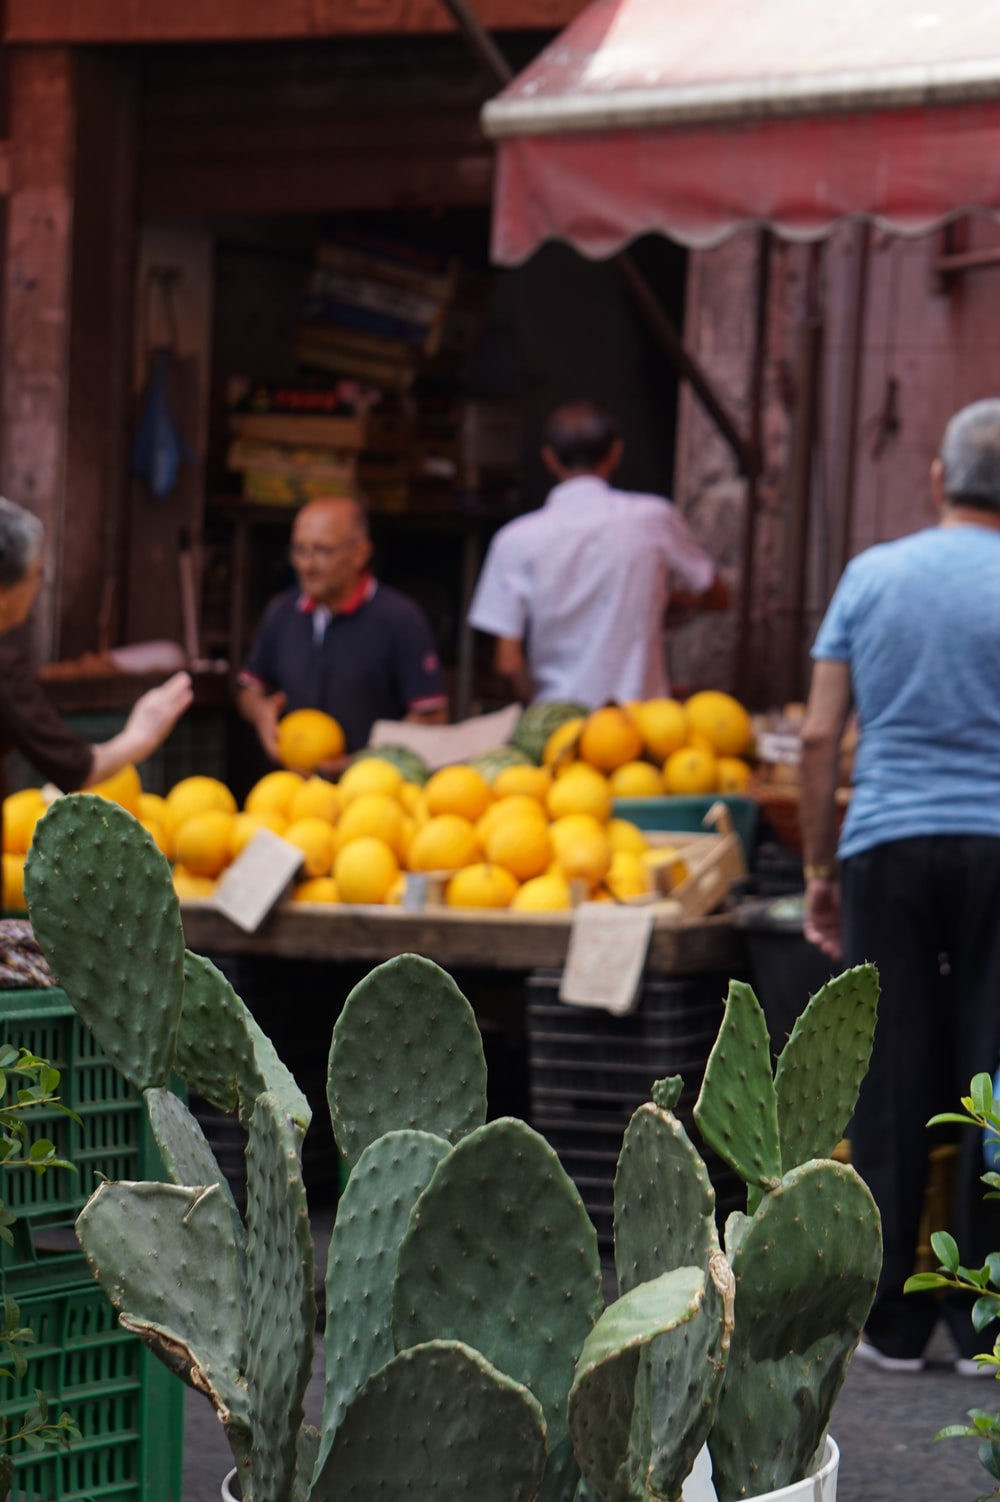 green cacti in the market